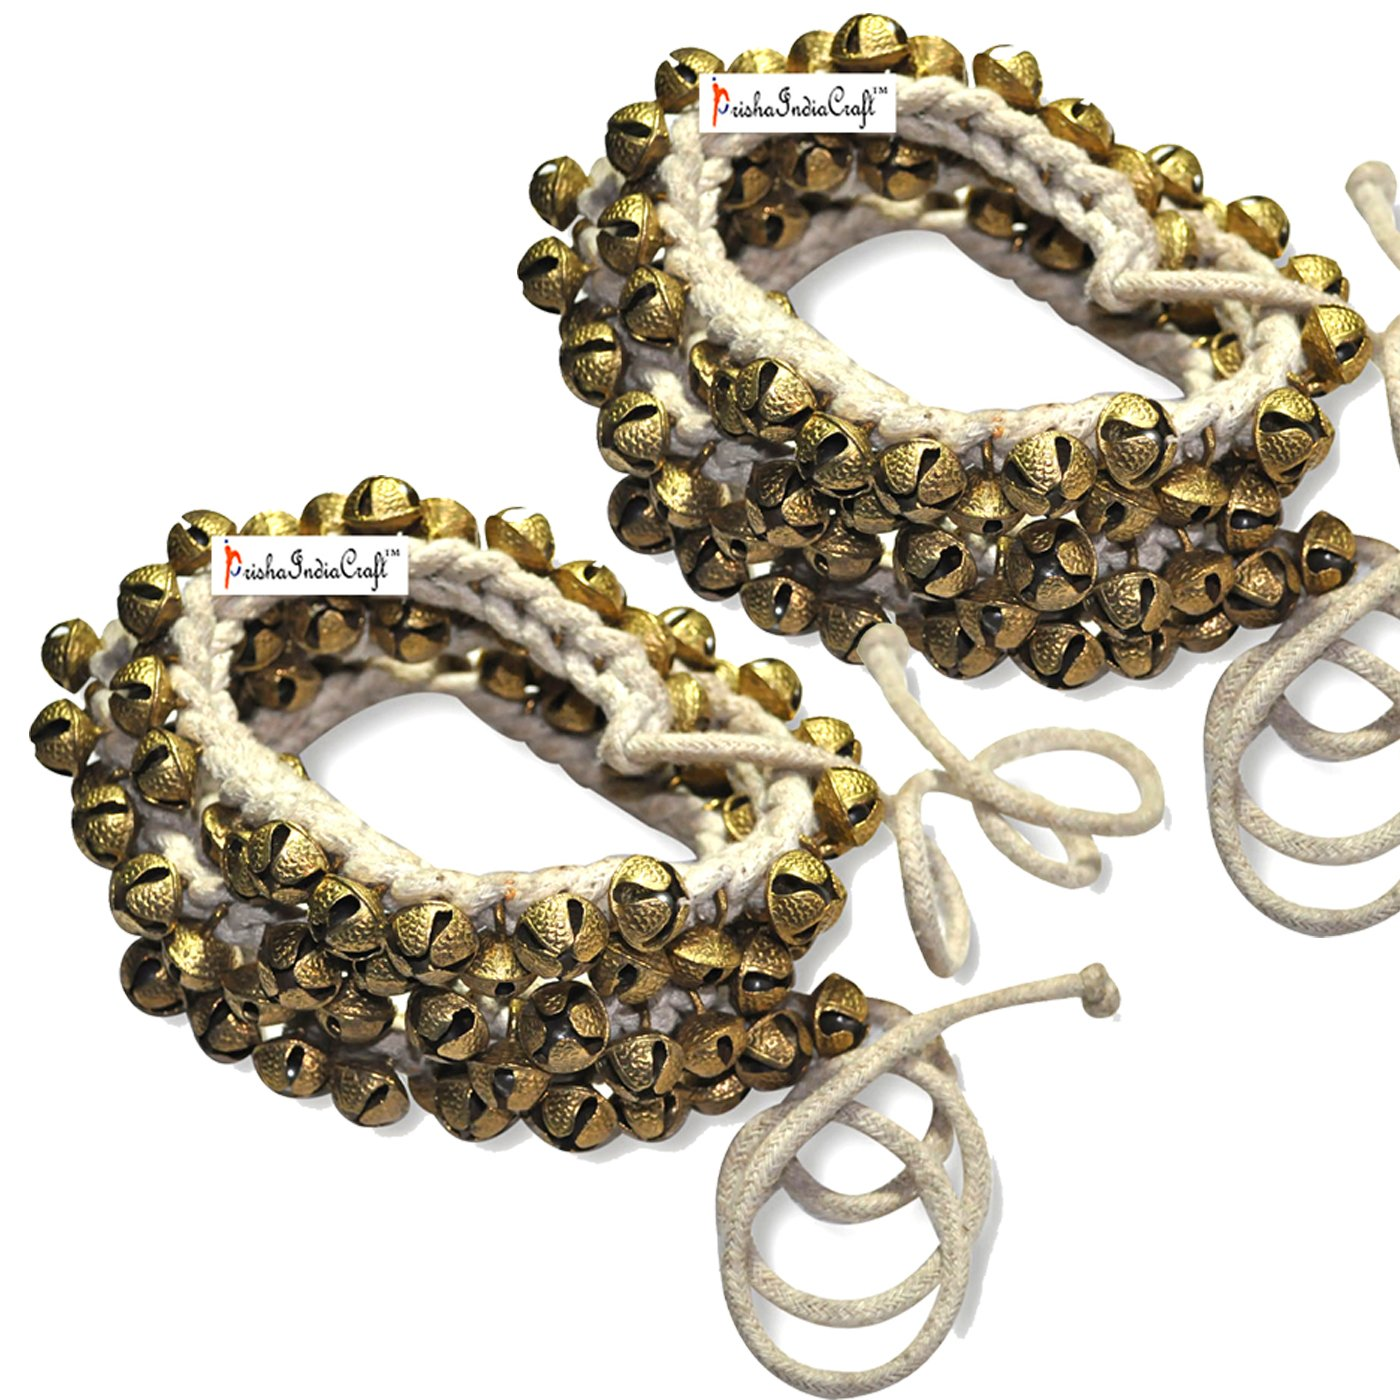 Prisha India Craft ® Kathak Ghungroo Pair, (100+100) (16 No. Ghungroo)Big Bells Best quality Tied with CottonCord Indian Classical Dancers Anklet Musical Instrument